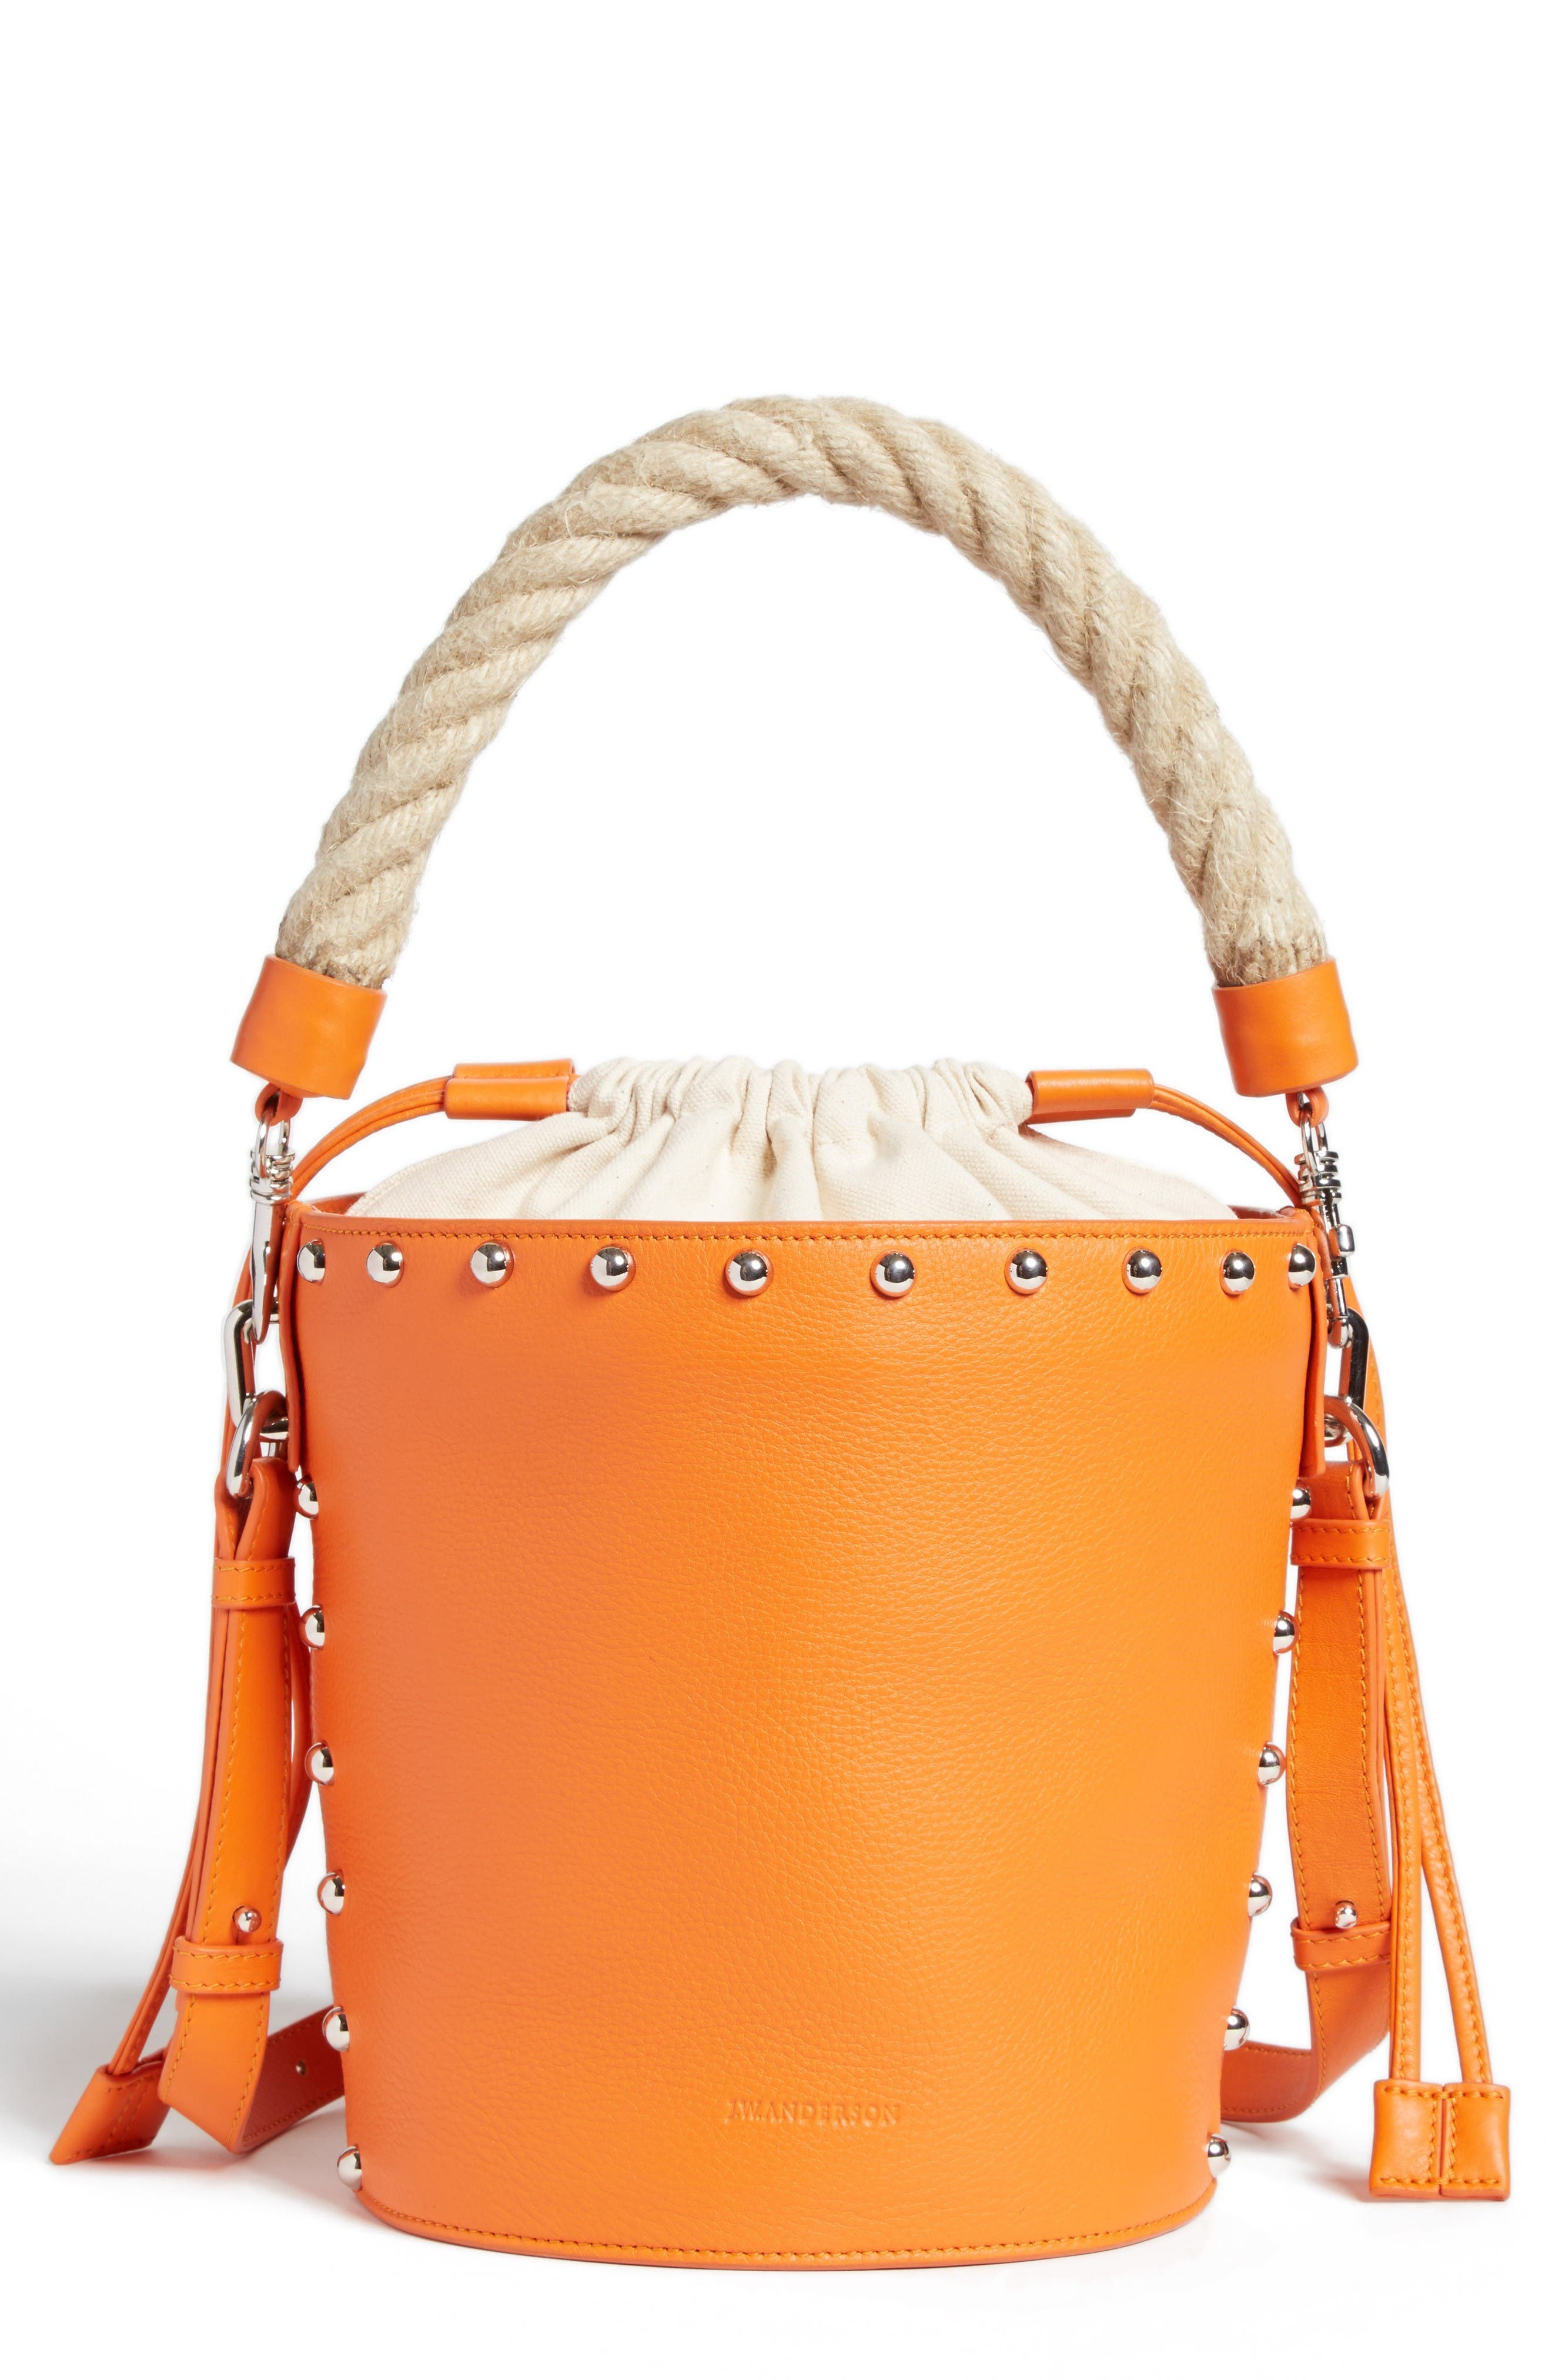 Main Image - J.W.ANDERSON Studded Bucket Bag